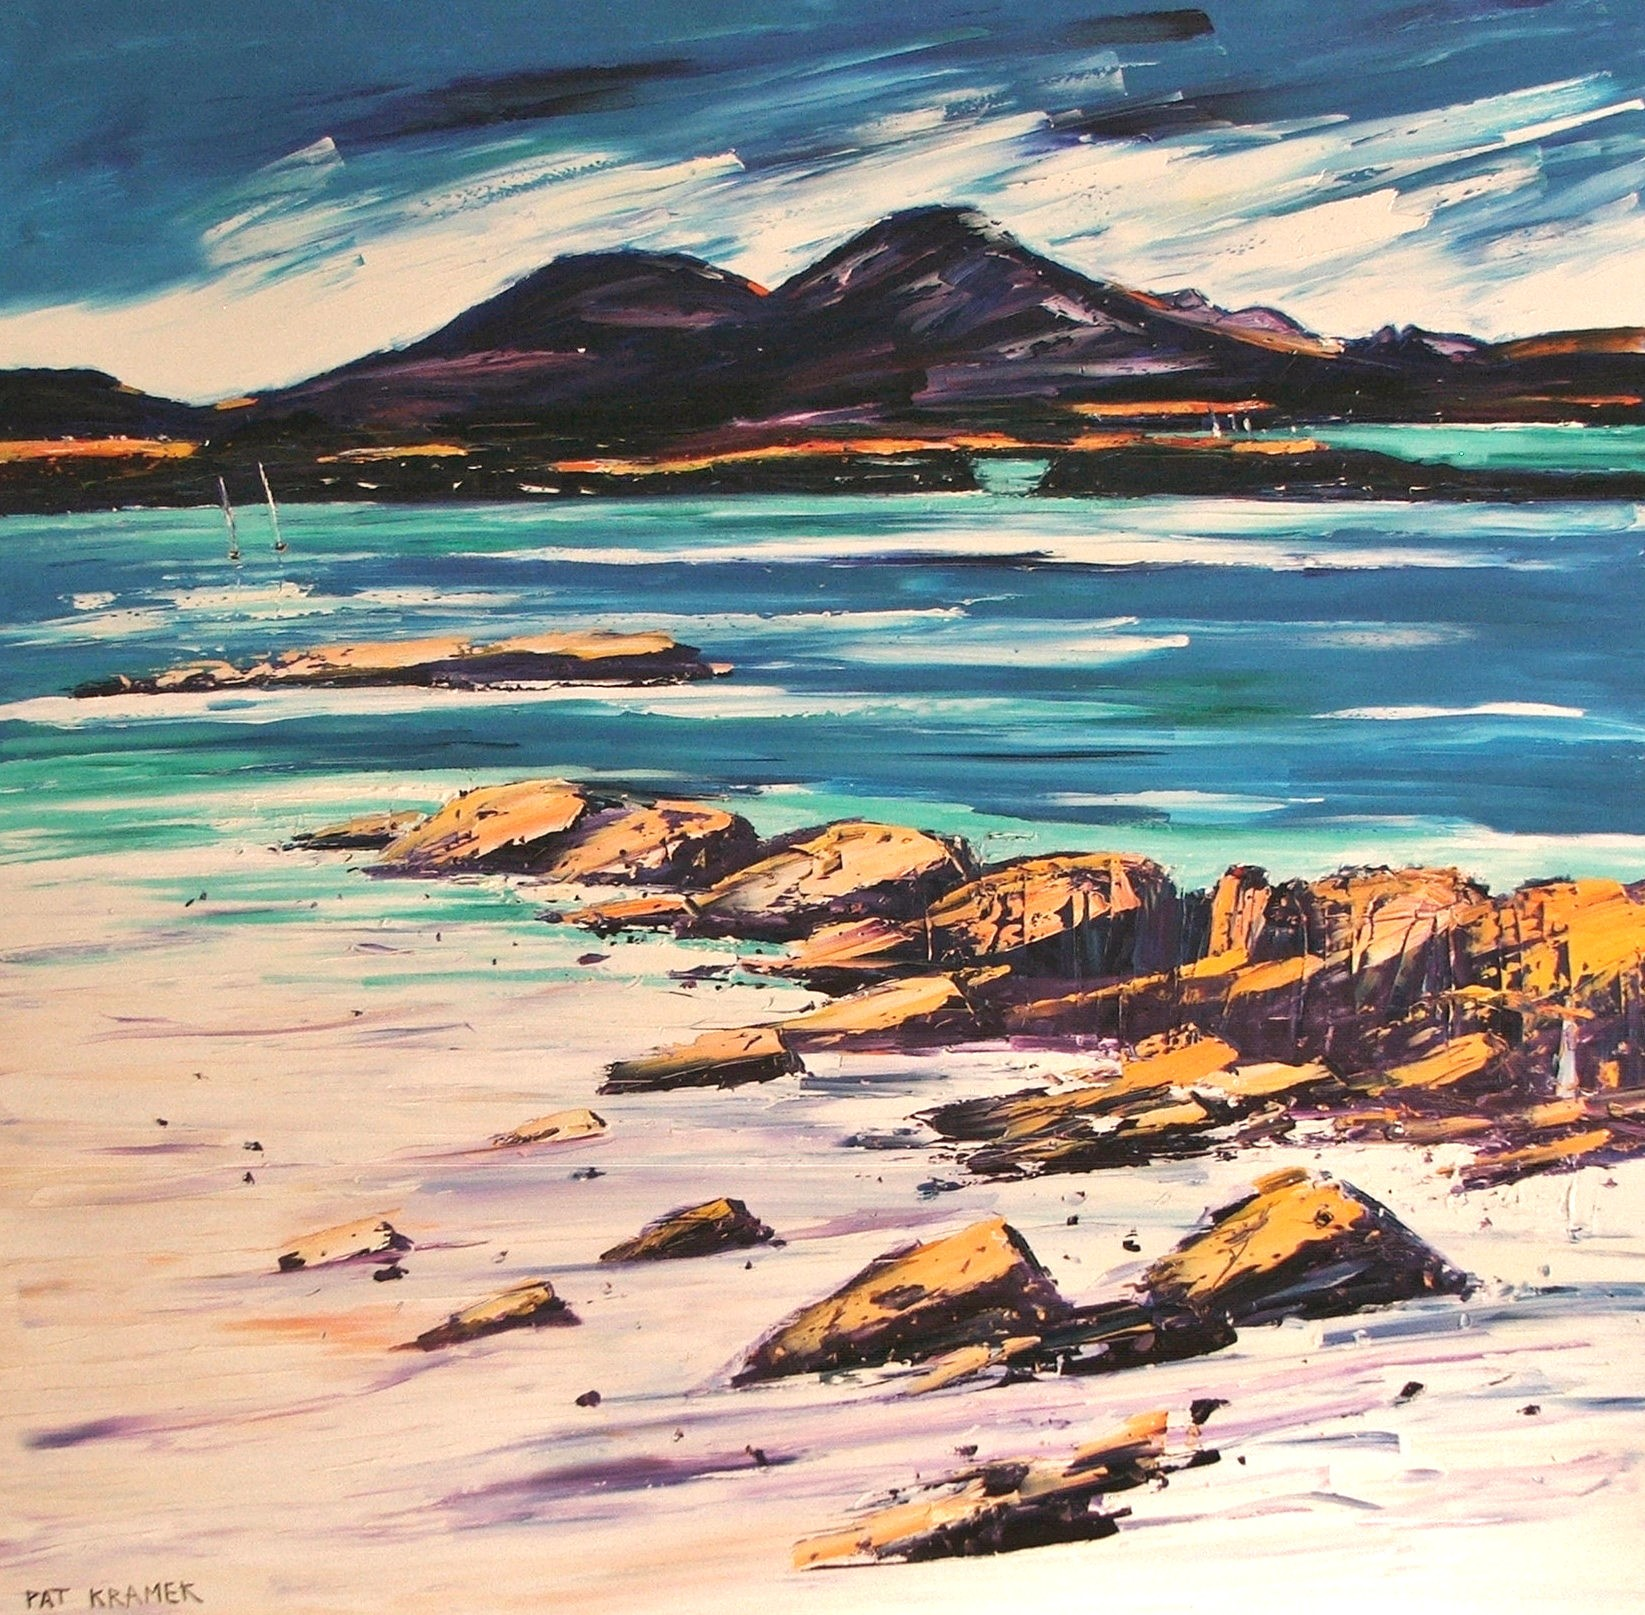 'The Cuillins' by artist Pat Kramek